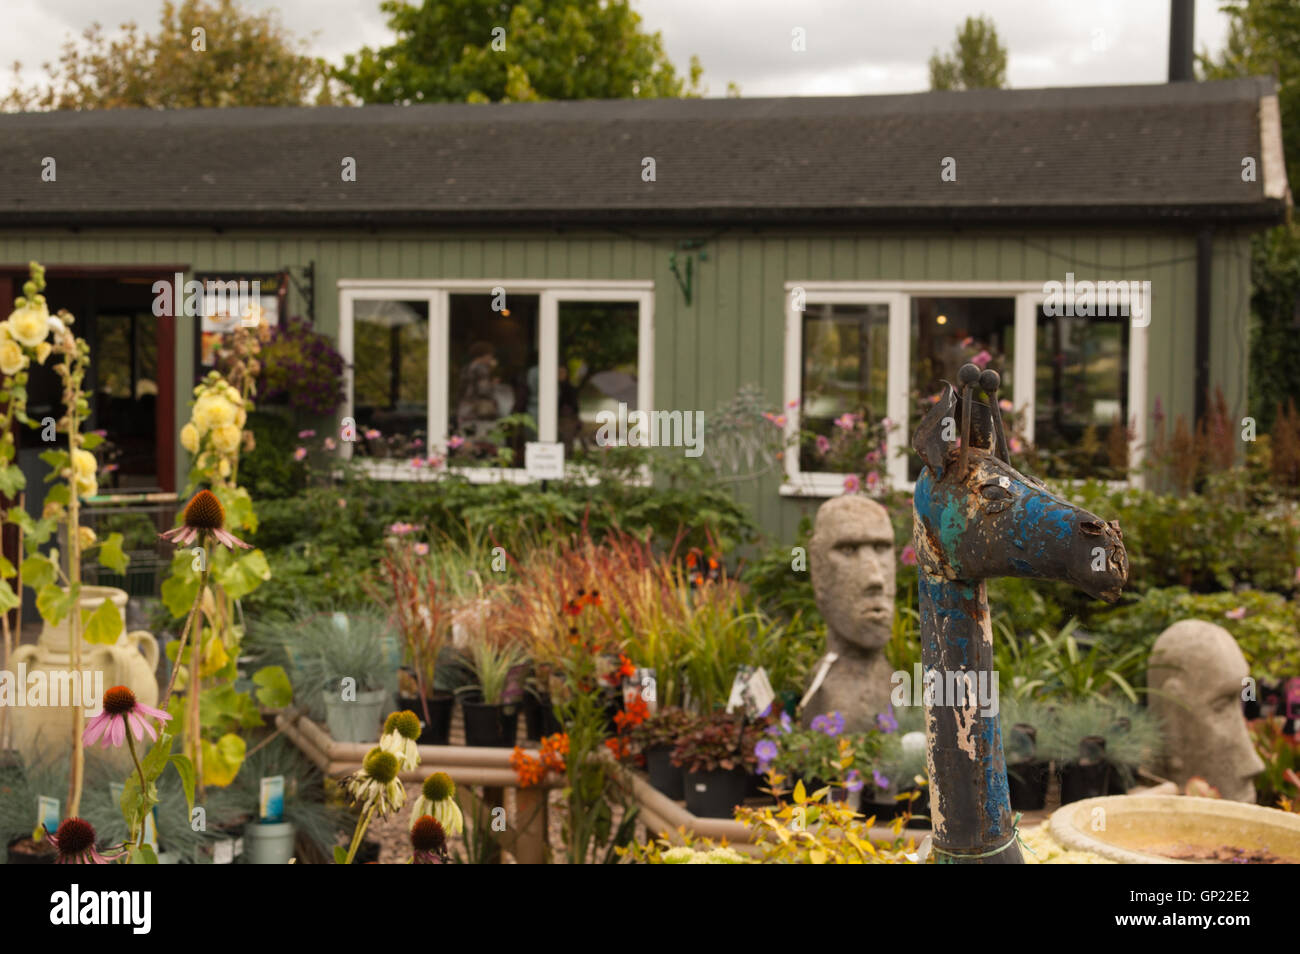 Garden centre visitors Flowers and buildings perennials and colours - Stock Image